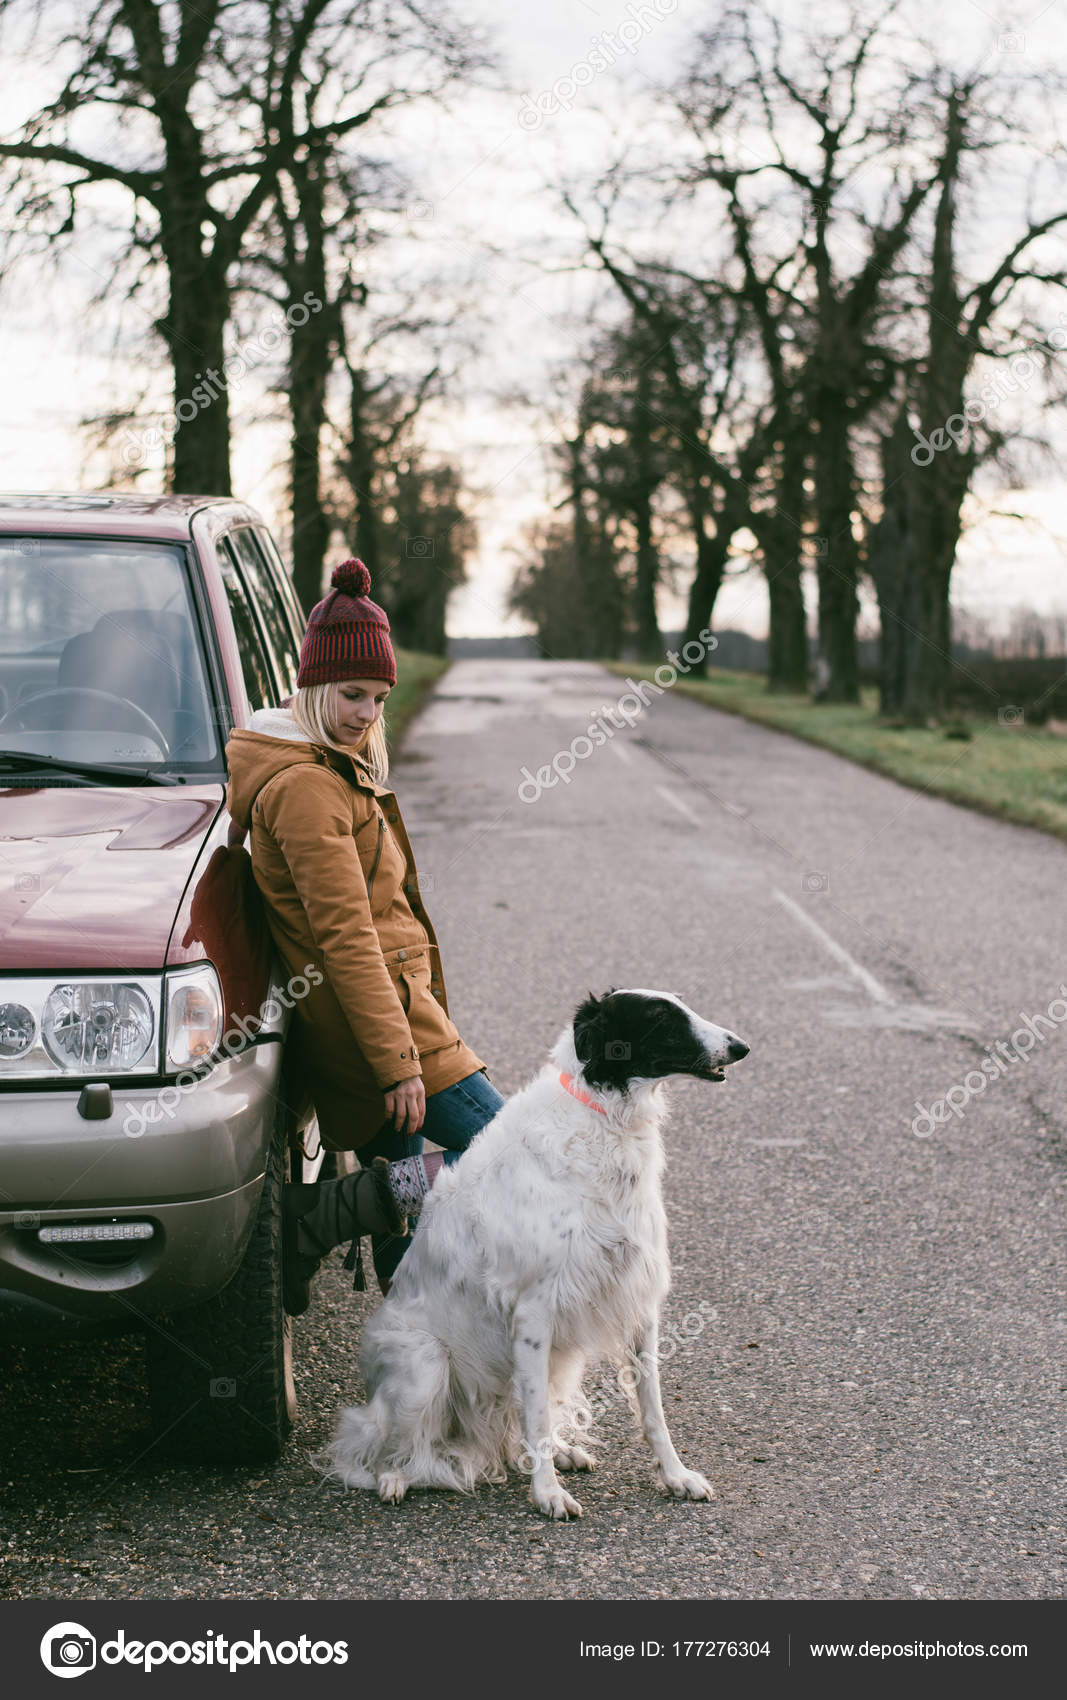 Travel Dog Woman Traveling Her Dog Standing Road Vehicle